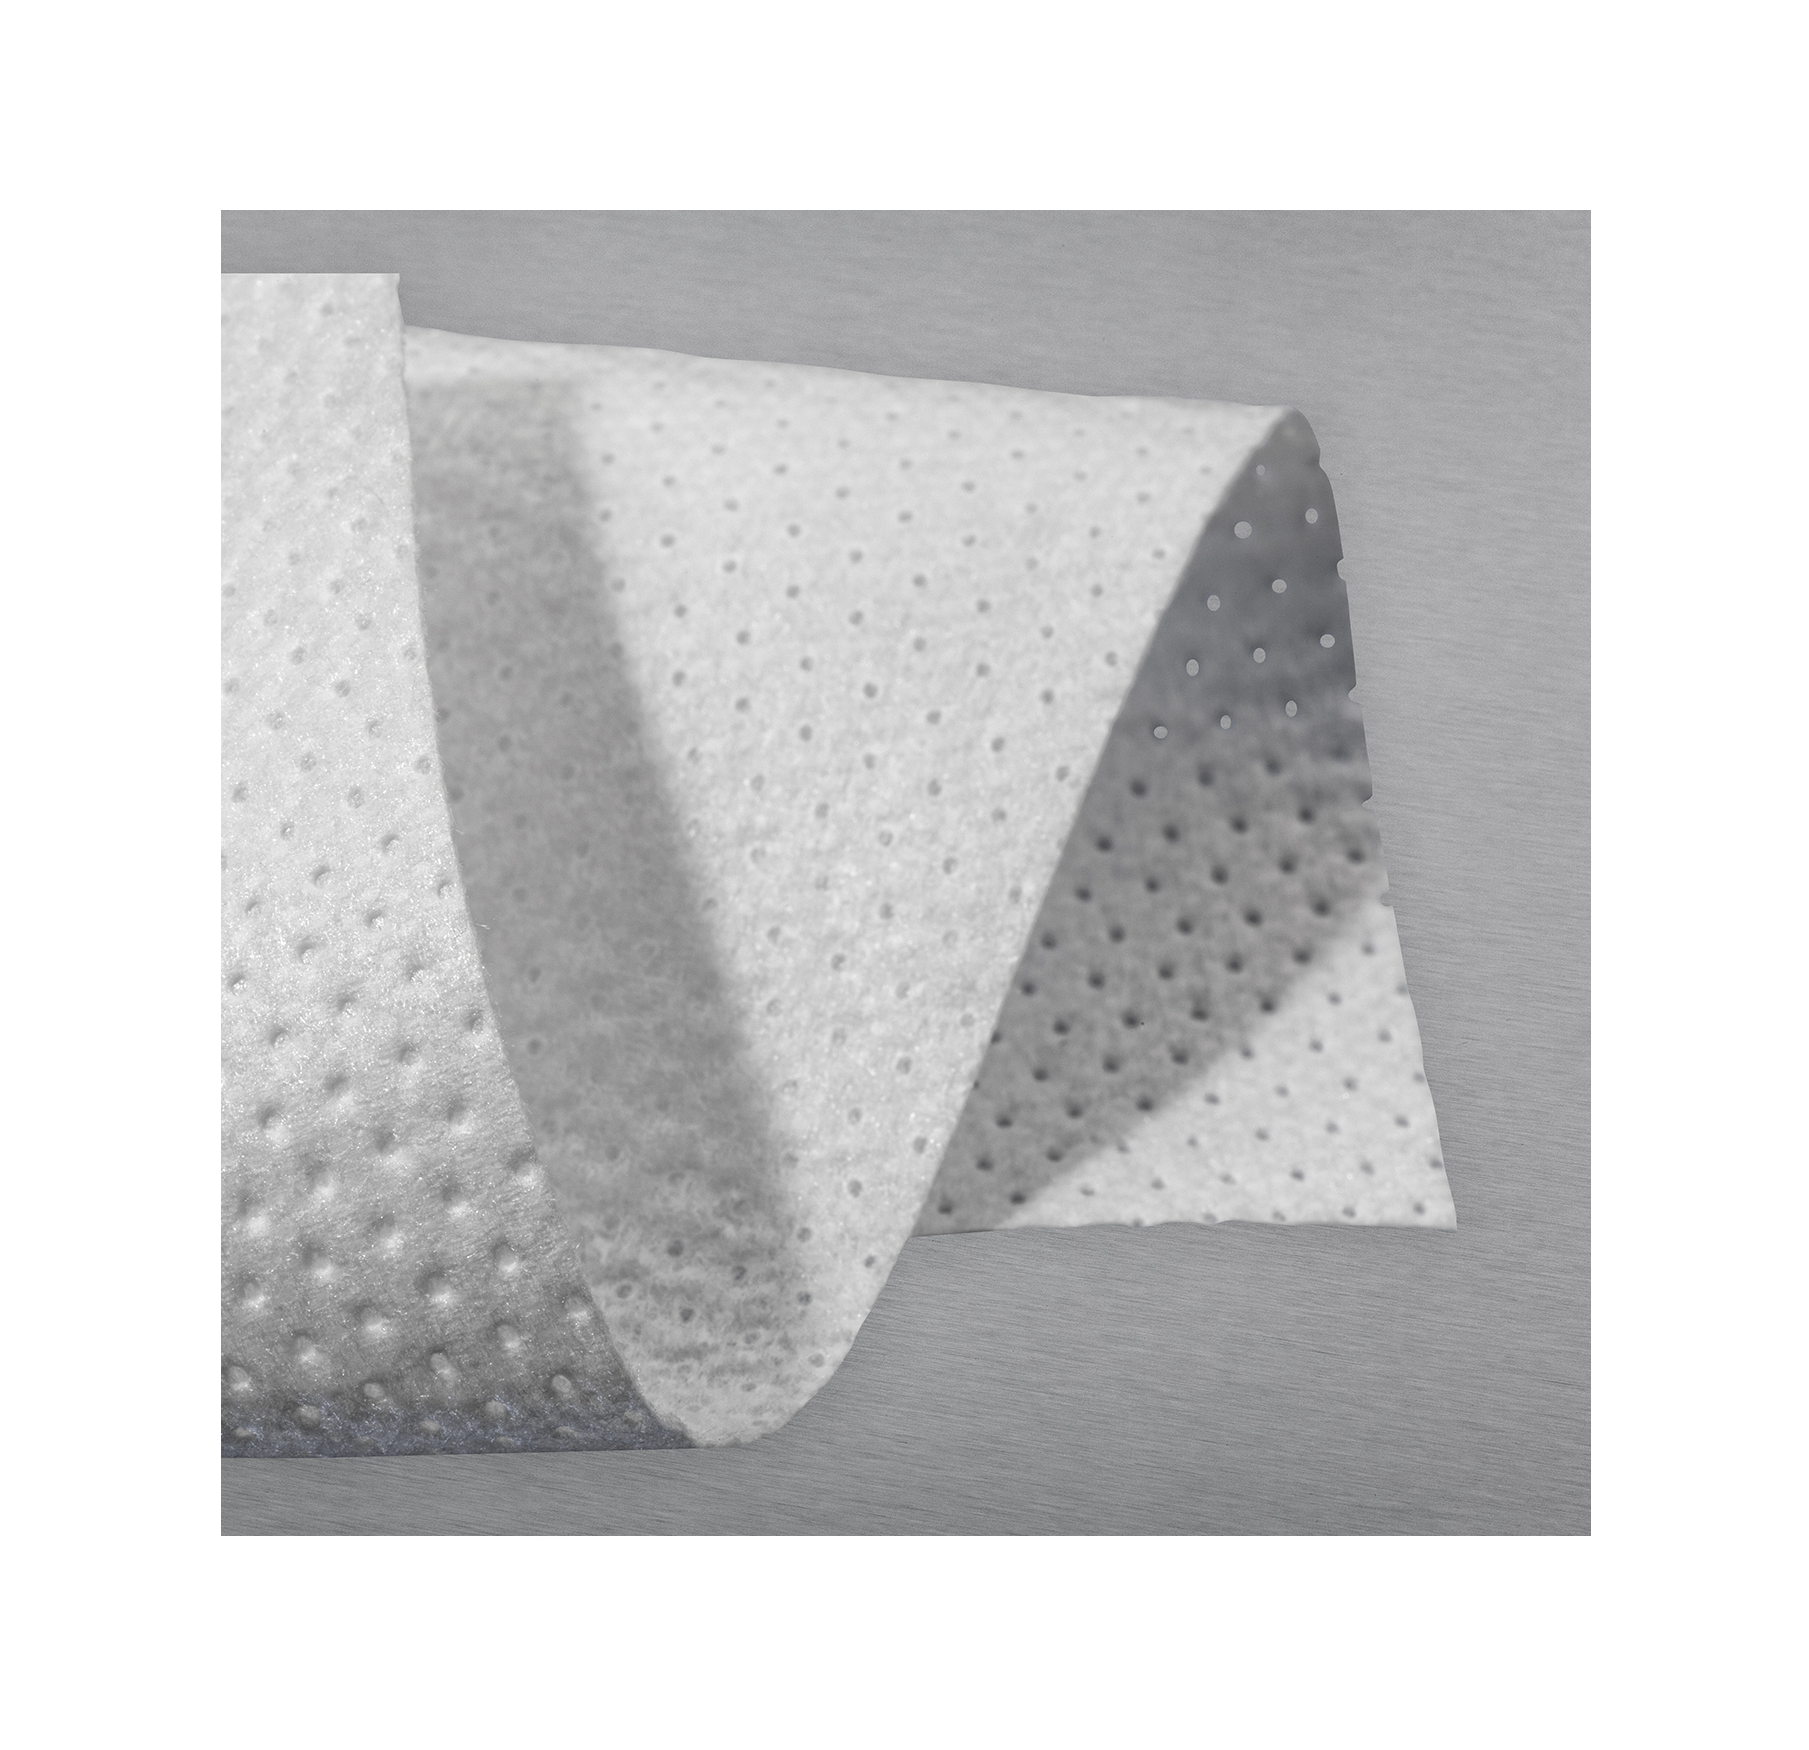 FG Clean Wipes 7722599L00 7225 Series Clean Room Wipe, Heavyweight, Laundered, 9 in WD X 9 in LG, 150 Wipes, Knit Polyester